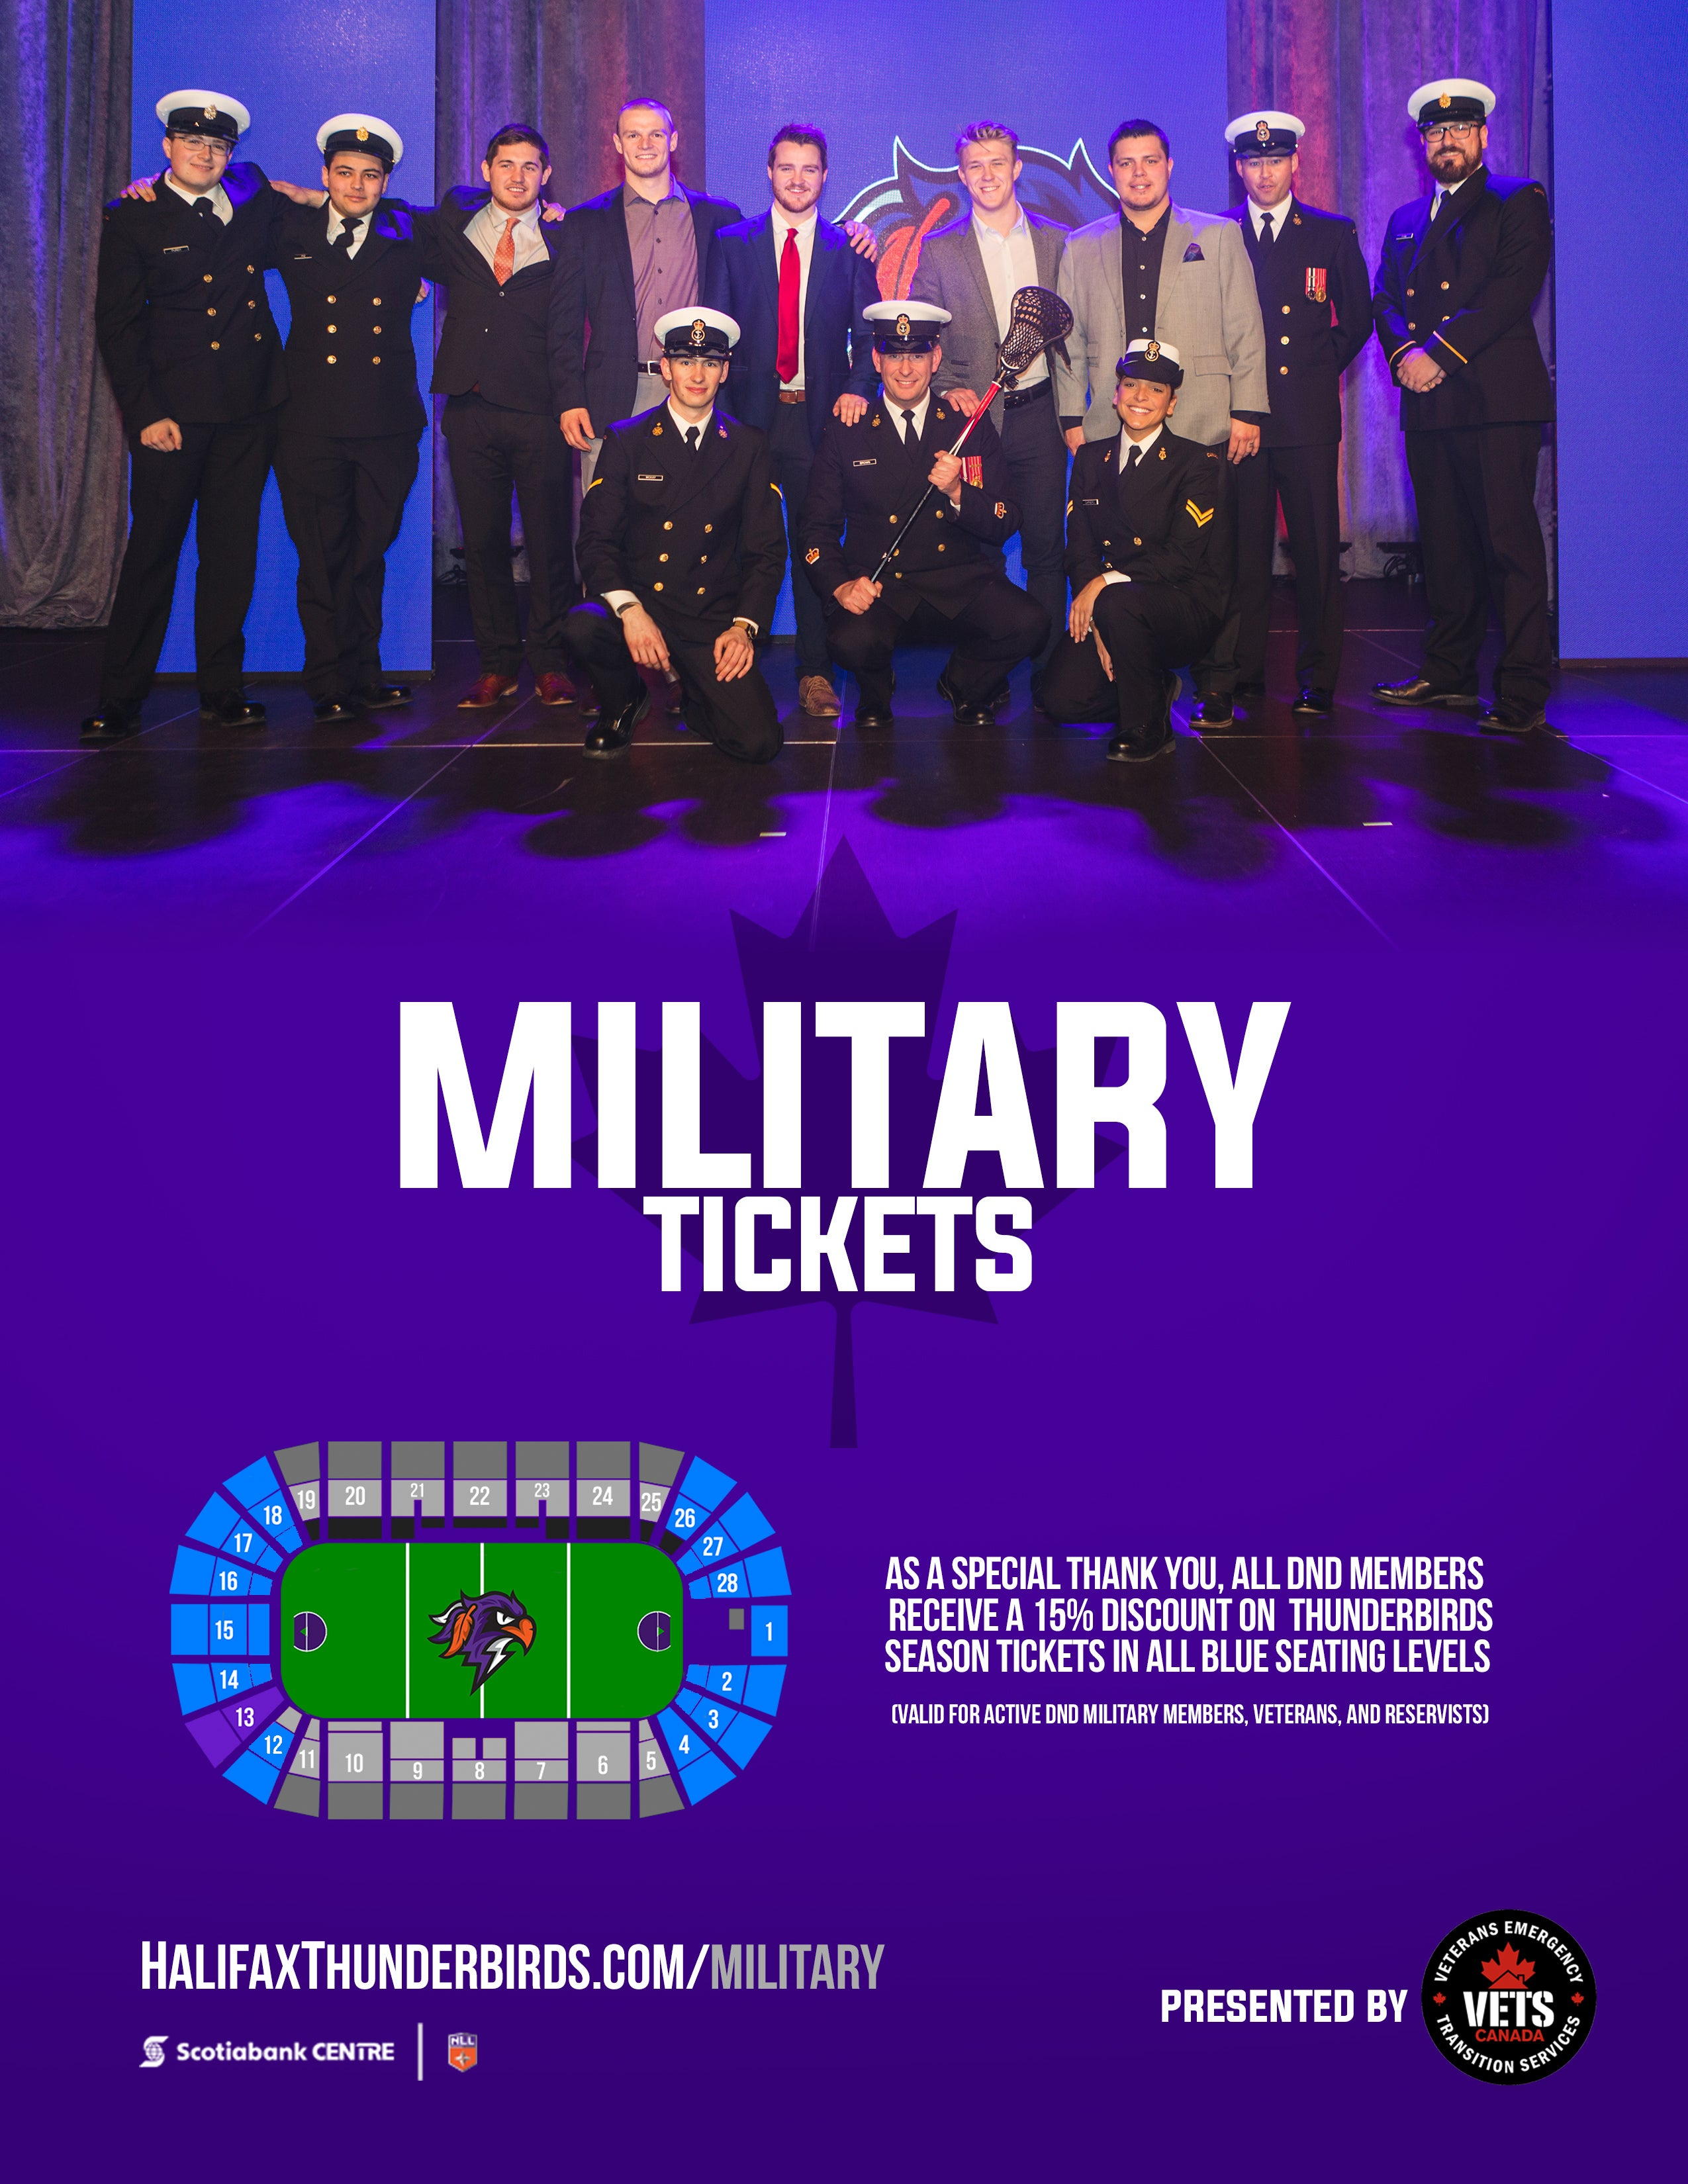 Military-Tickets-Flyer.jpg